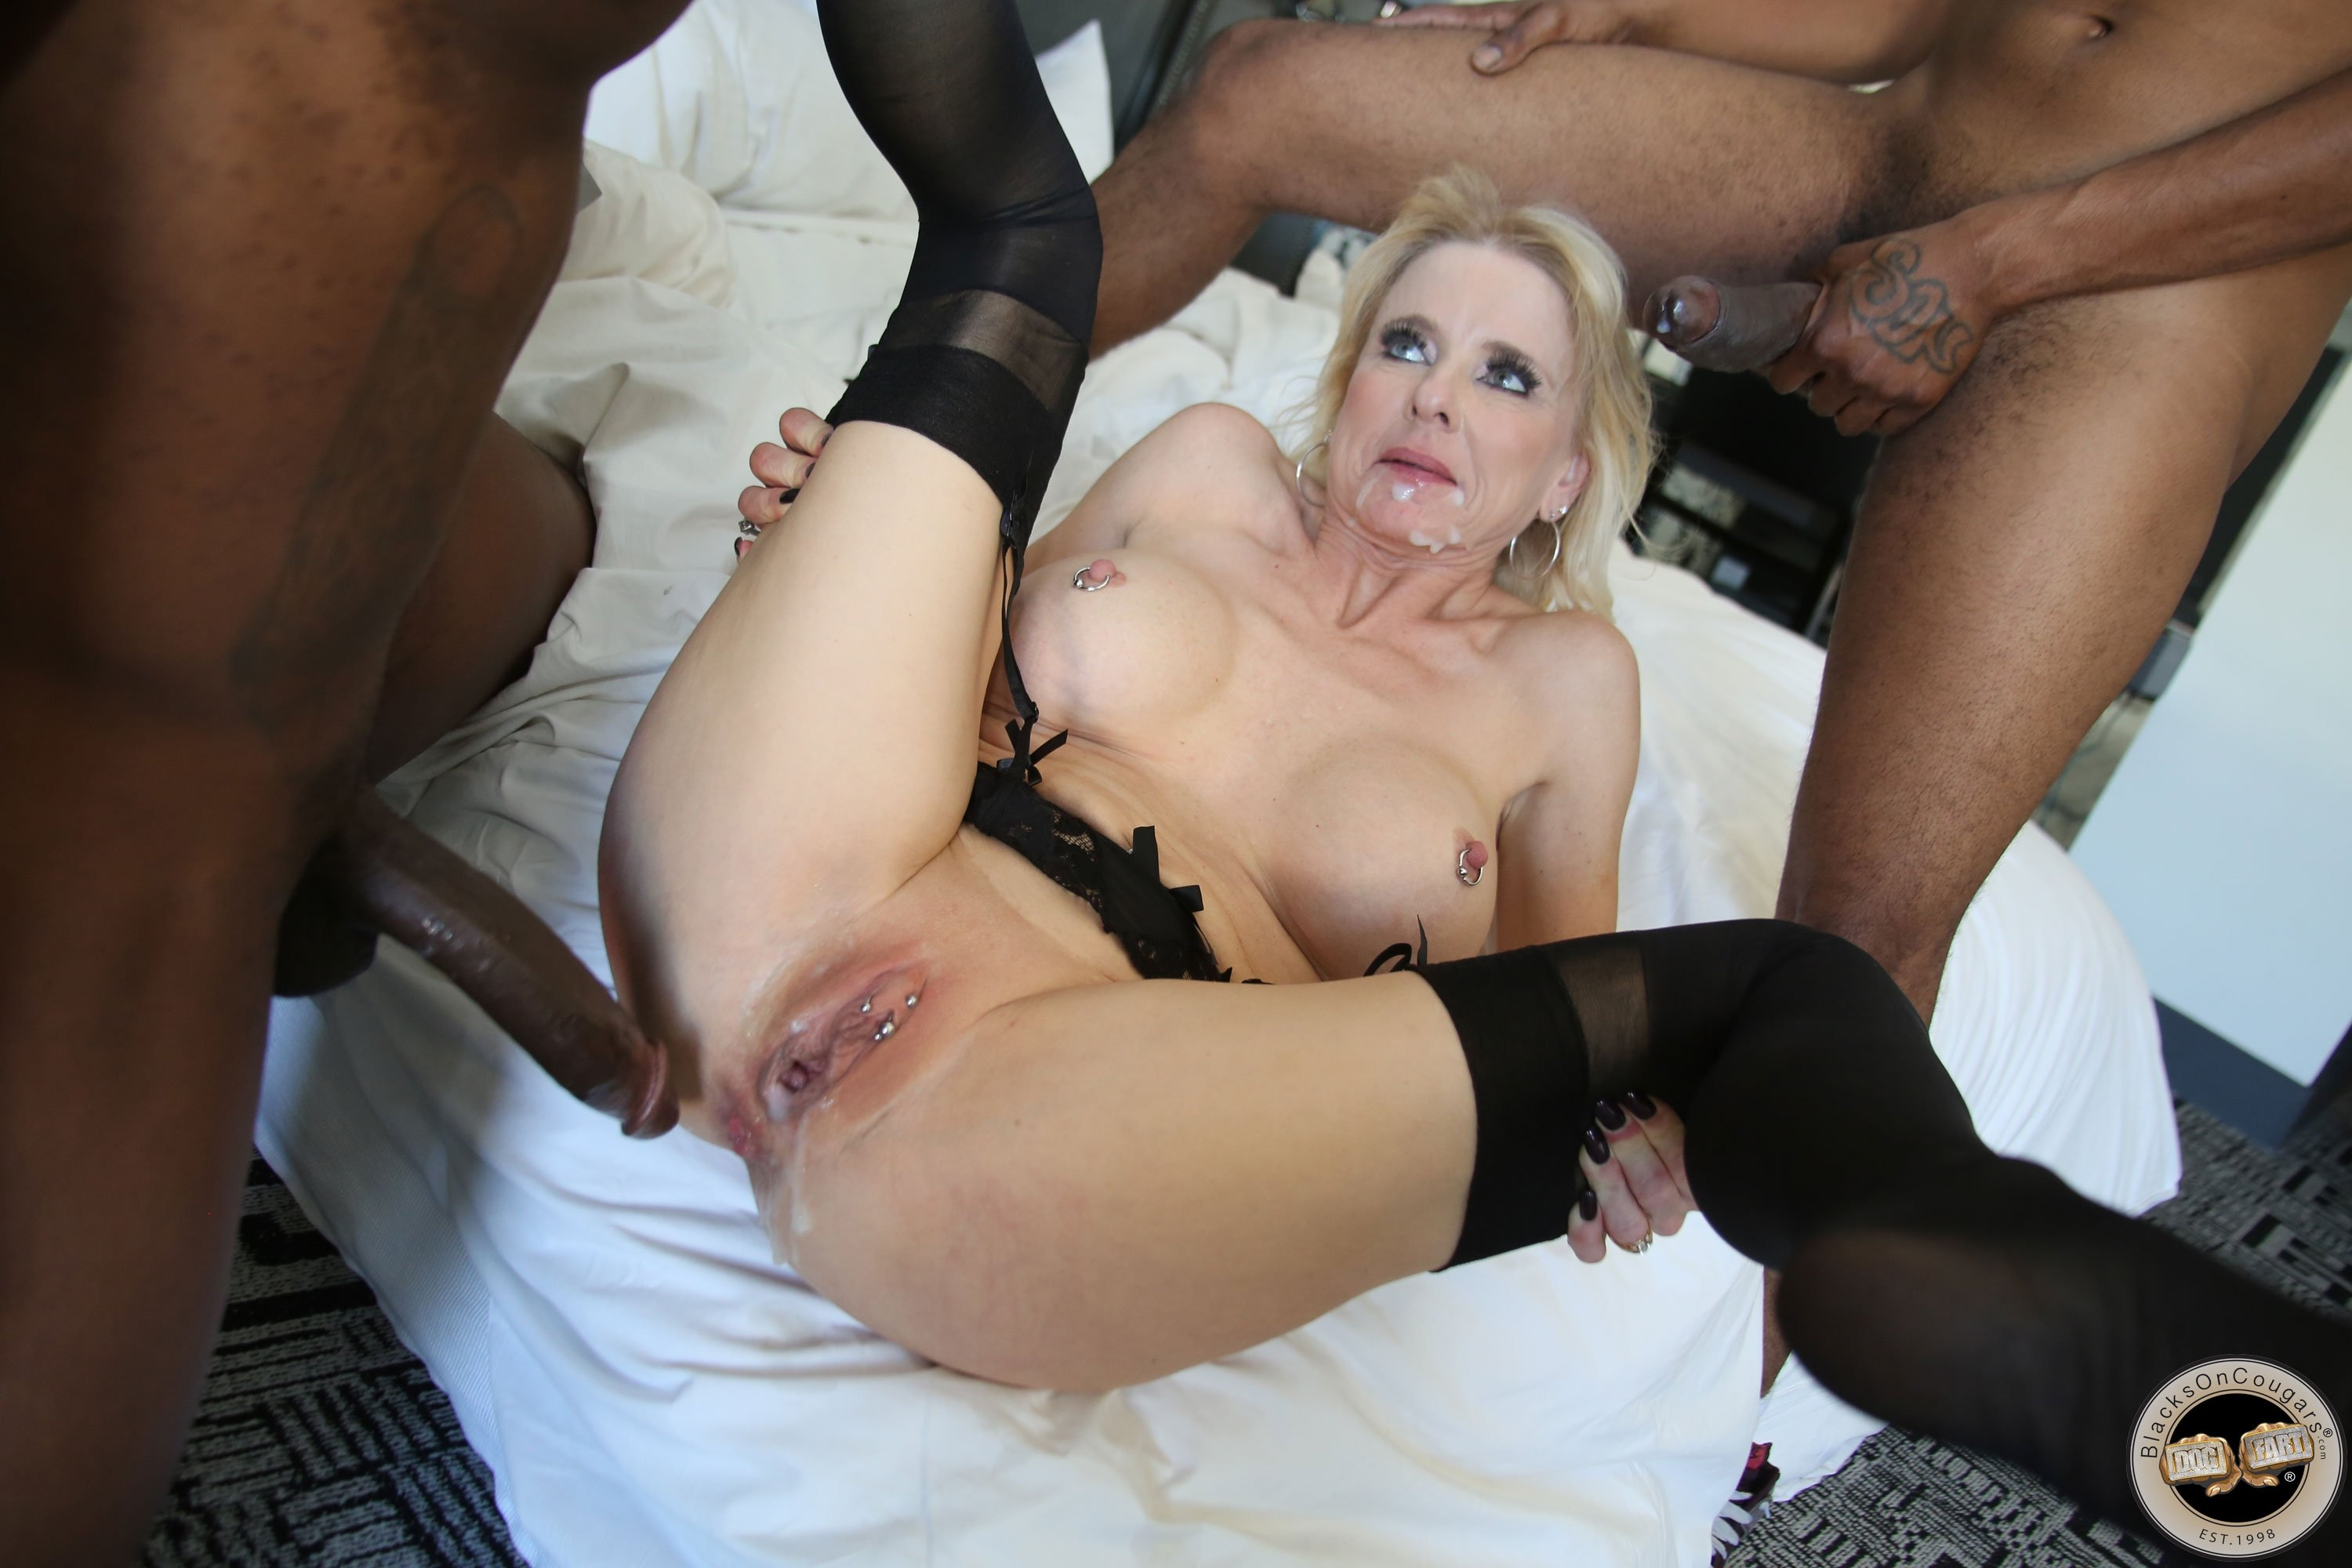 Rough interracial gangbang galleries